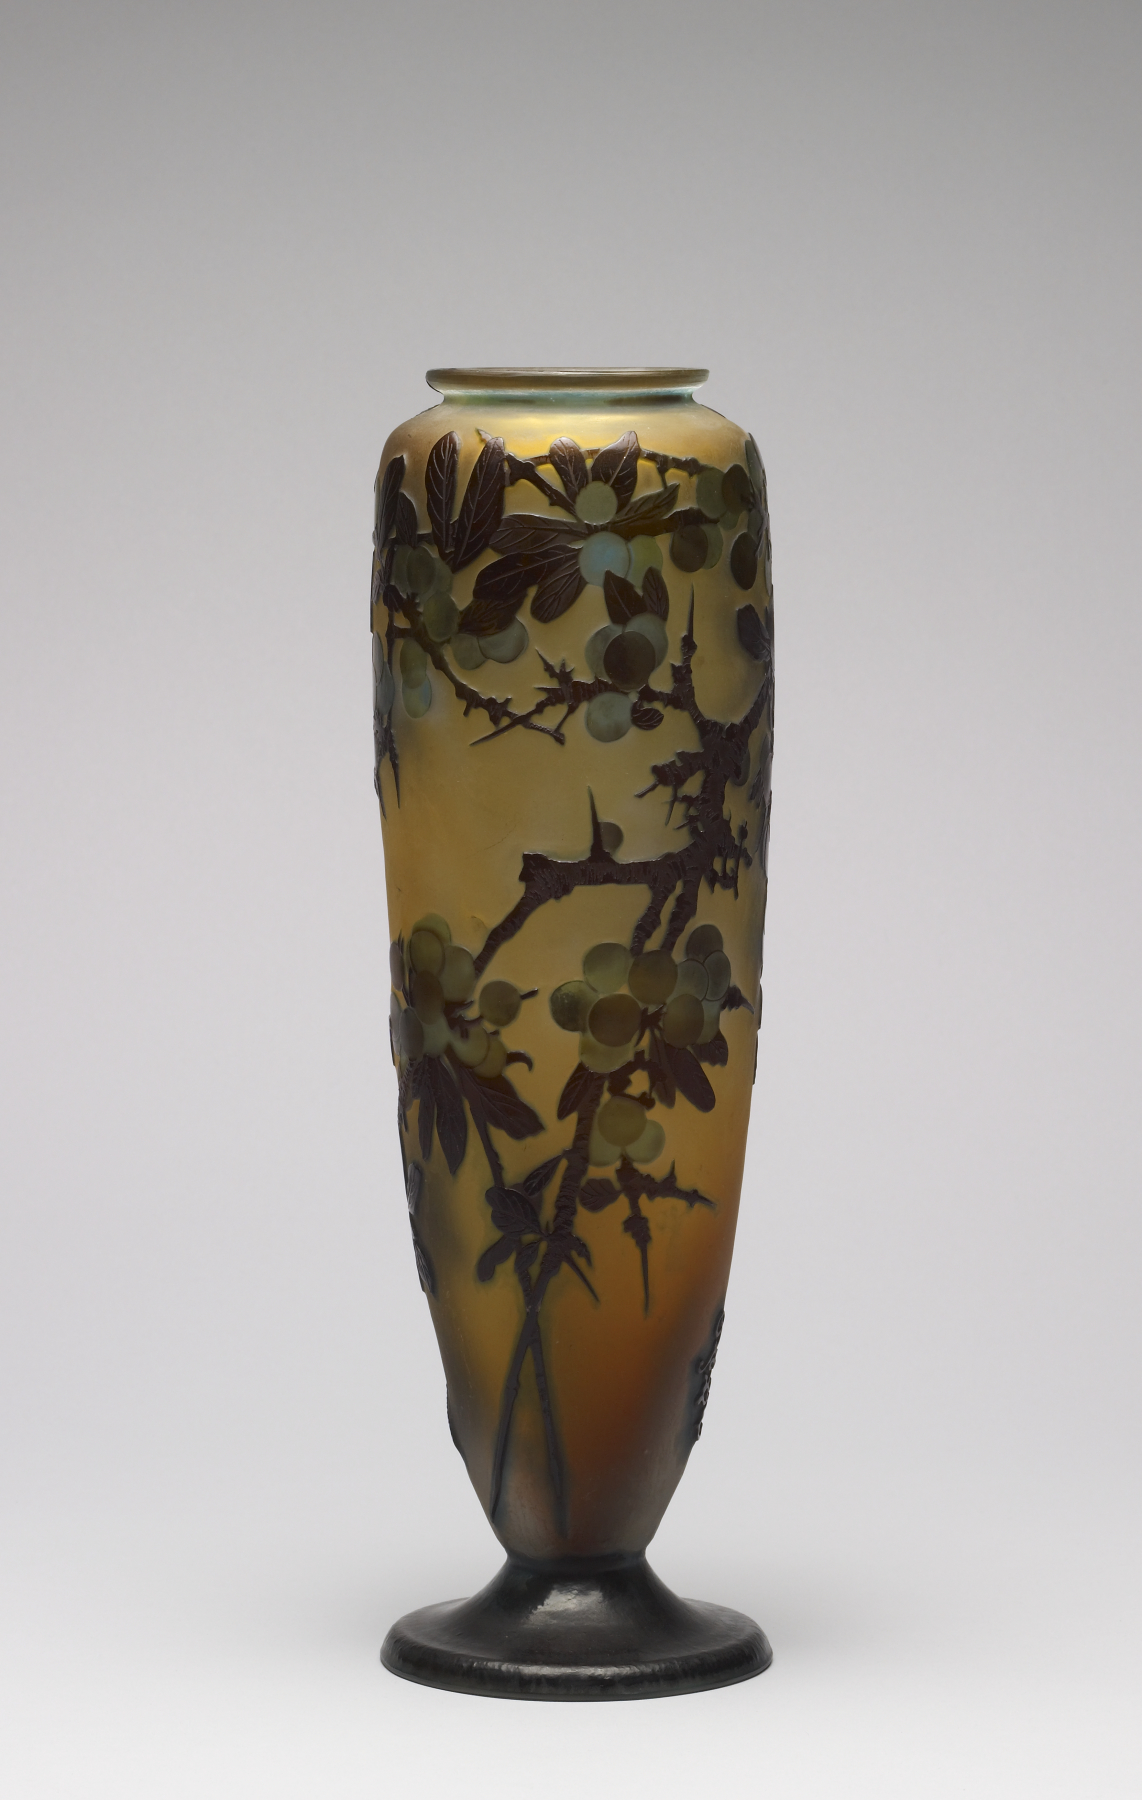 Art Glass Vase With Continuous Chain Design